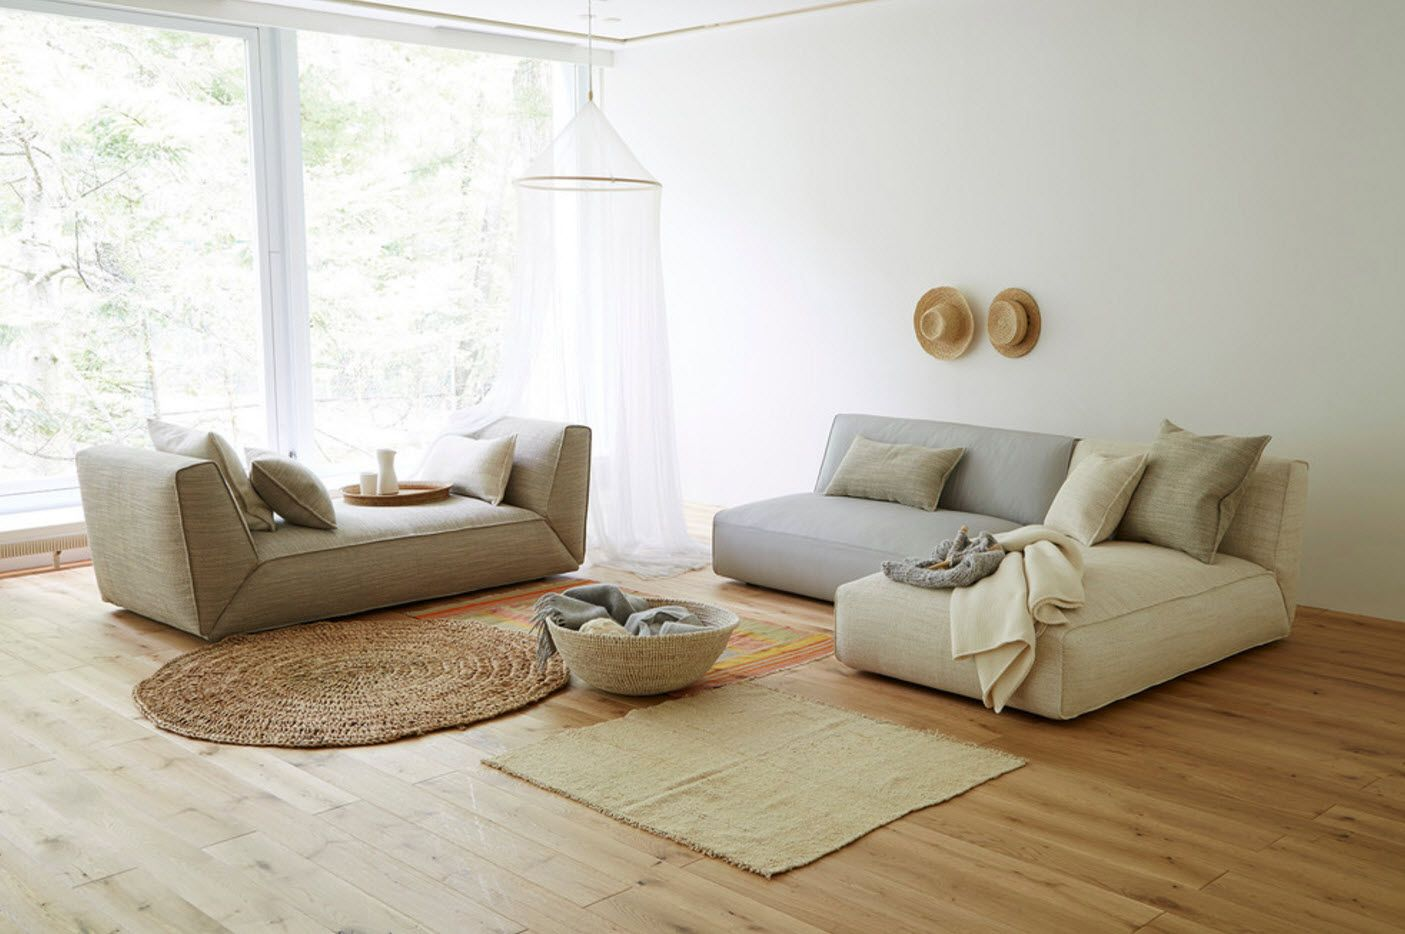 Gray and white classic combination for modern Scandinavian room